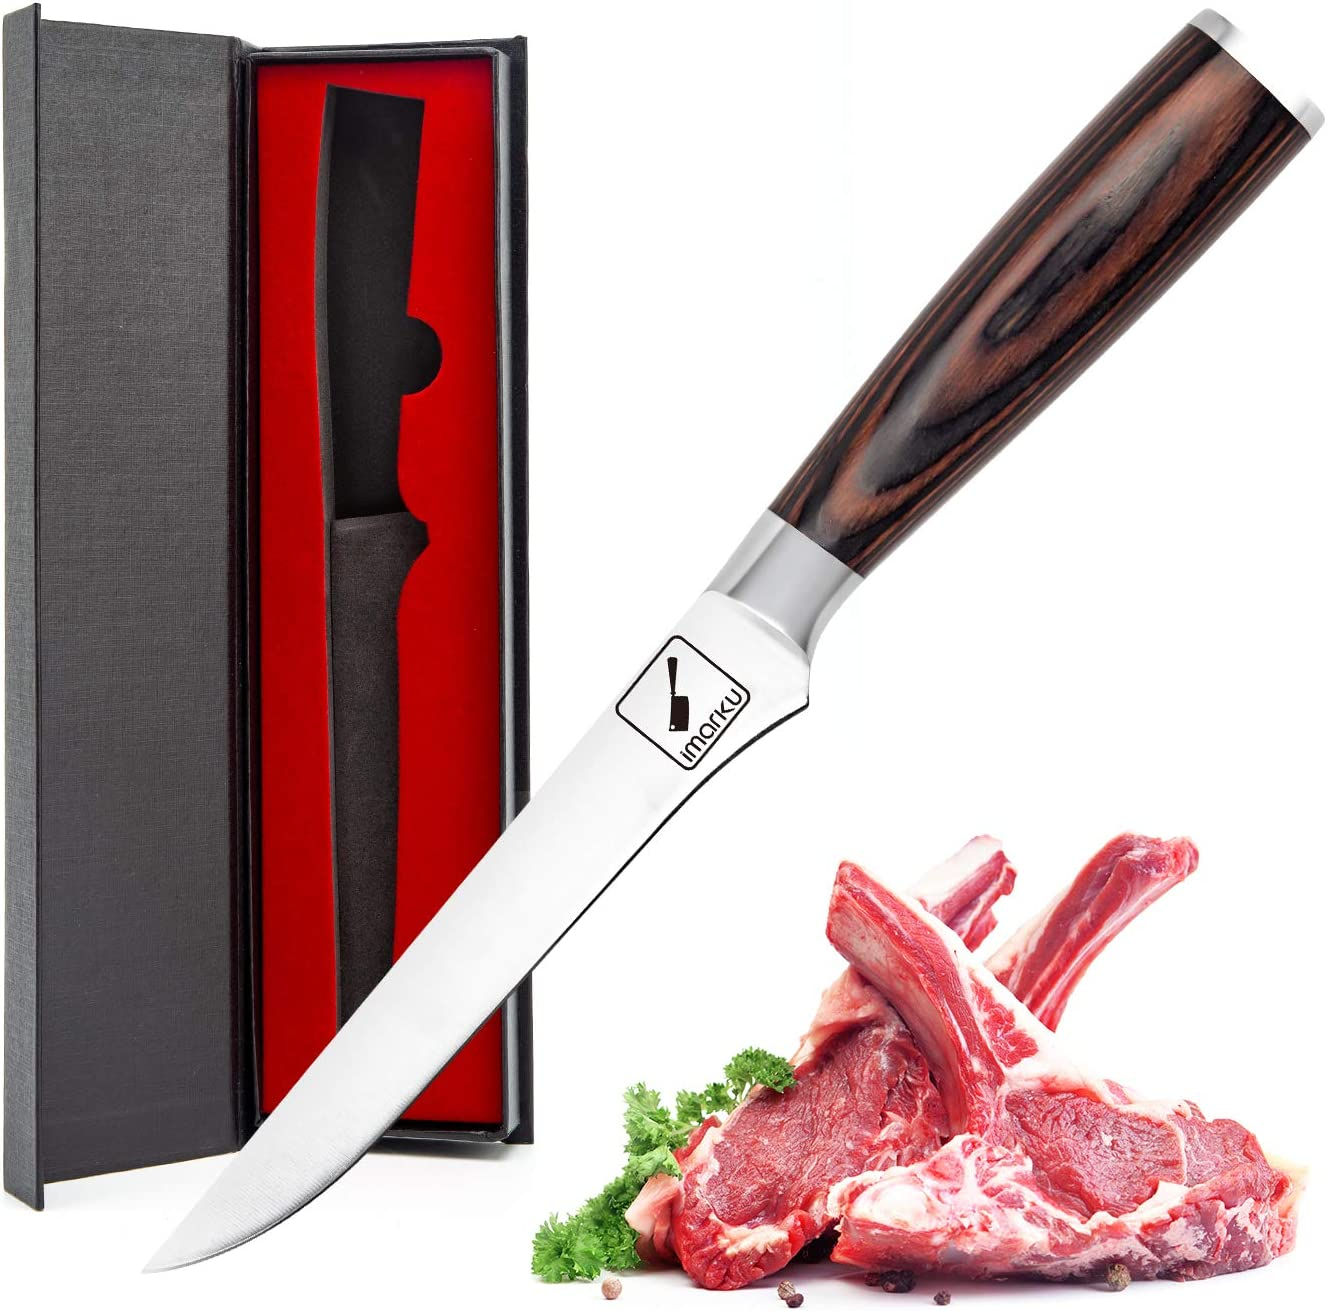 Long Beach Mall imarku Boning Knife 6-Inch Fillet High Sharp with C Razor Sales results No. 1